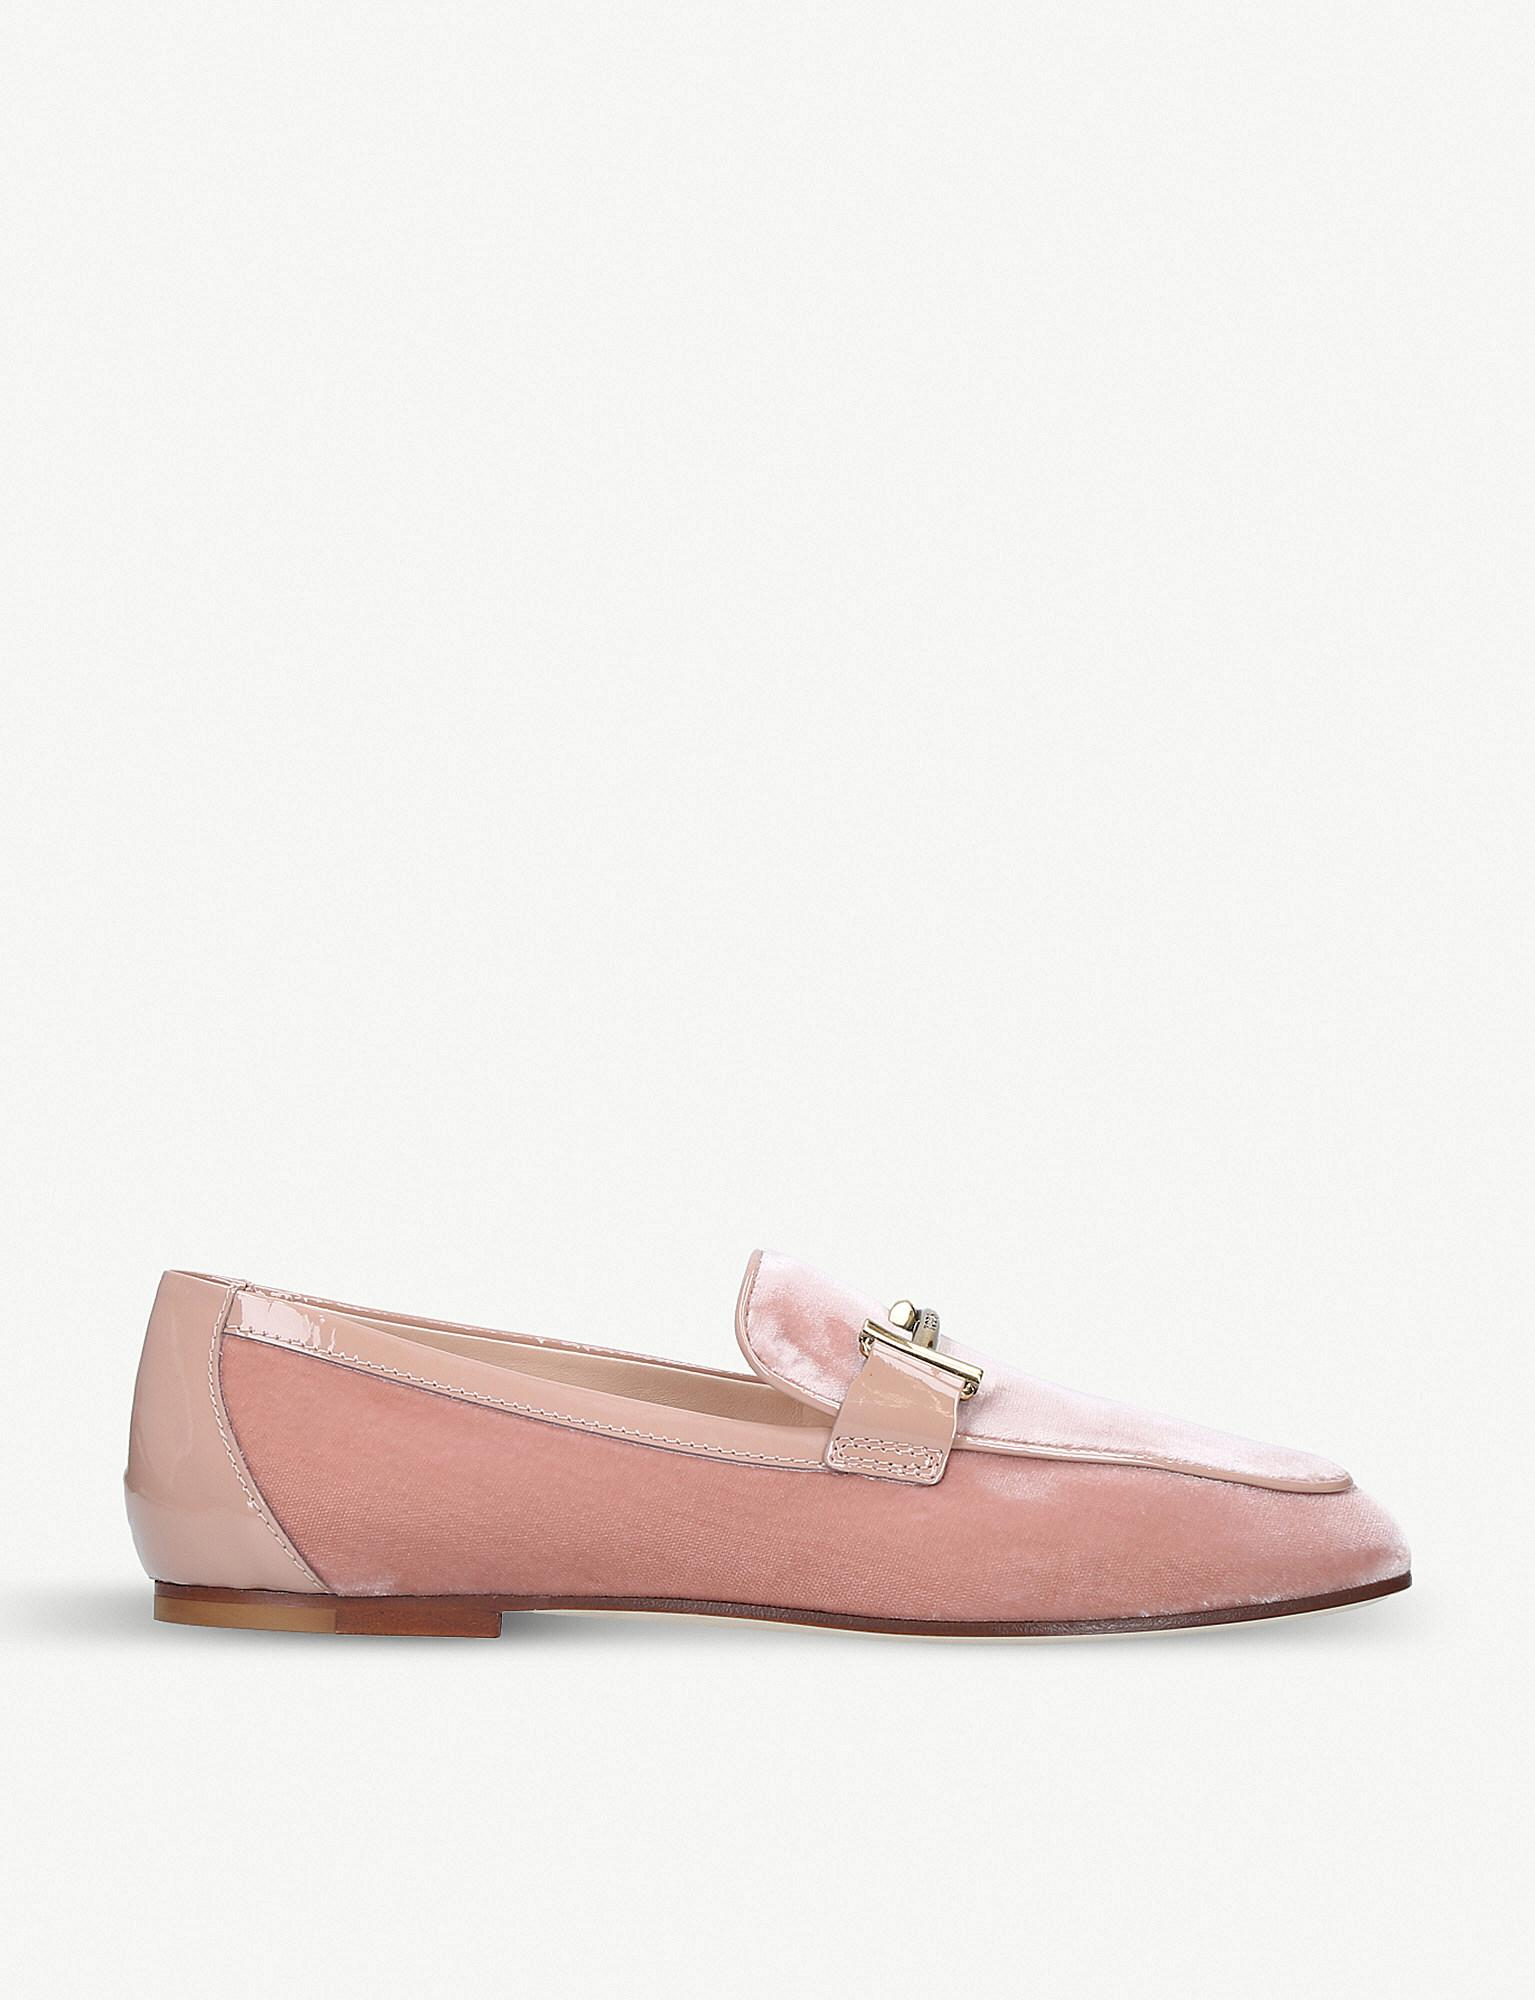 Lyst - Tod S Double T Velvet And Leather Loafers in Pink 1a56f256093ad